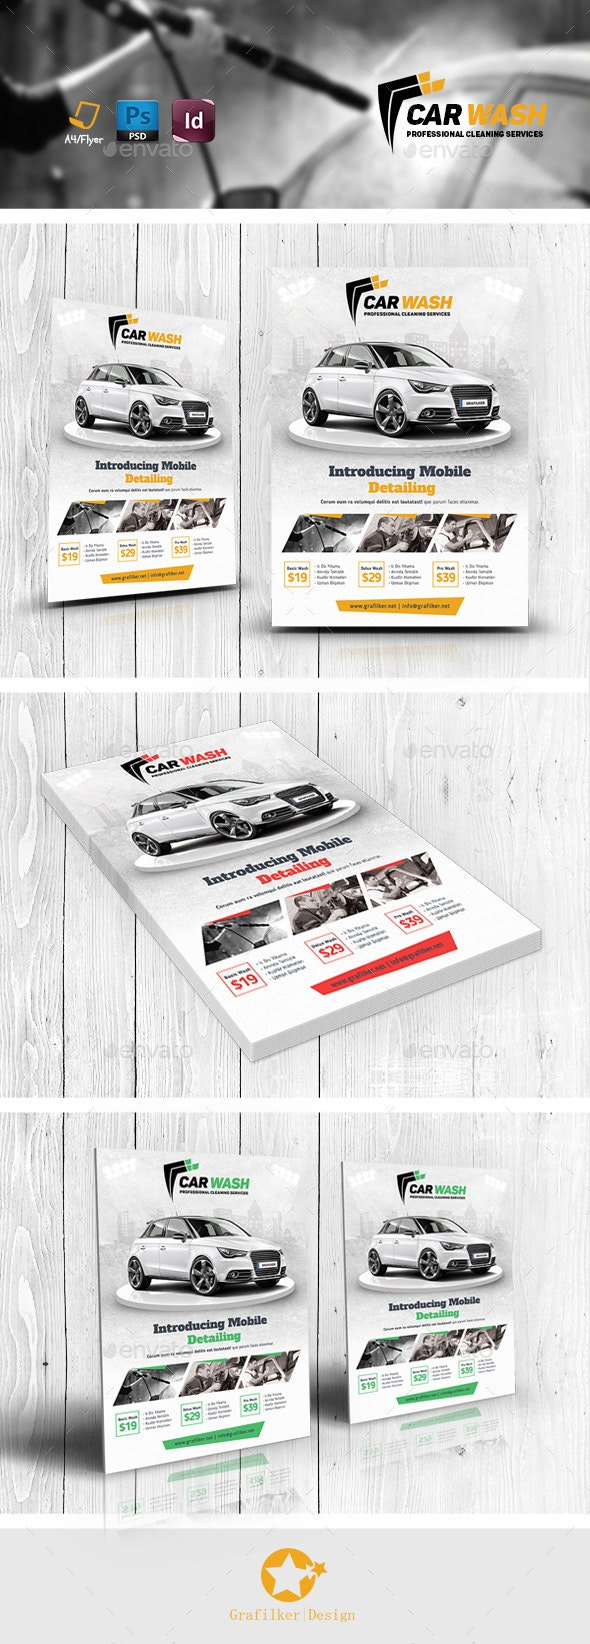 Car Wash Flyer Templates - Corporate Flyers